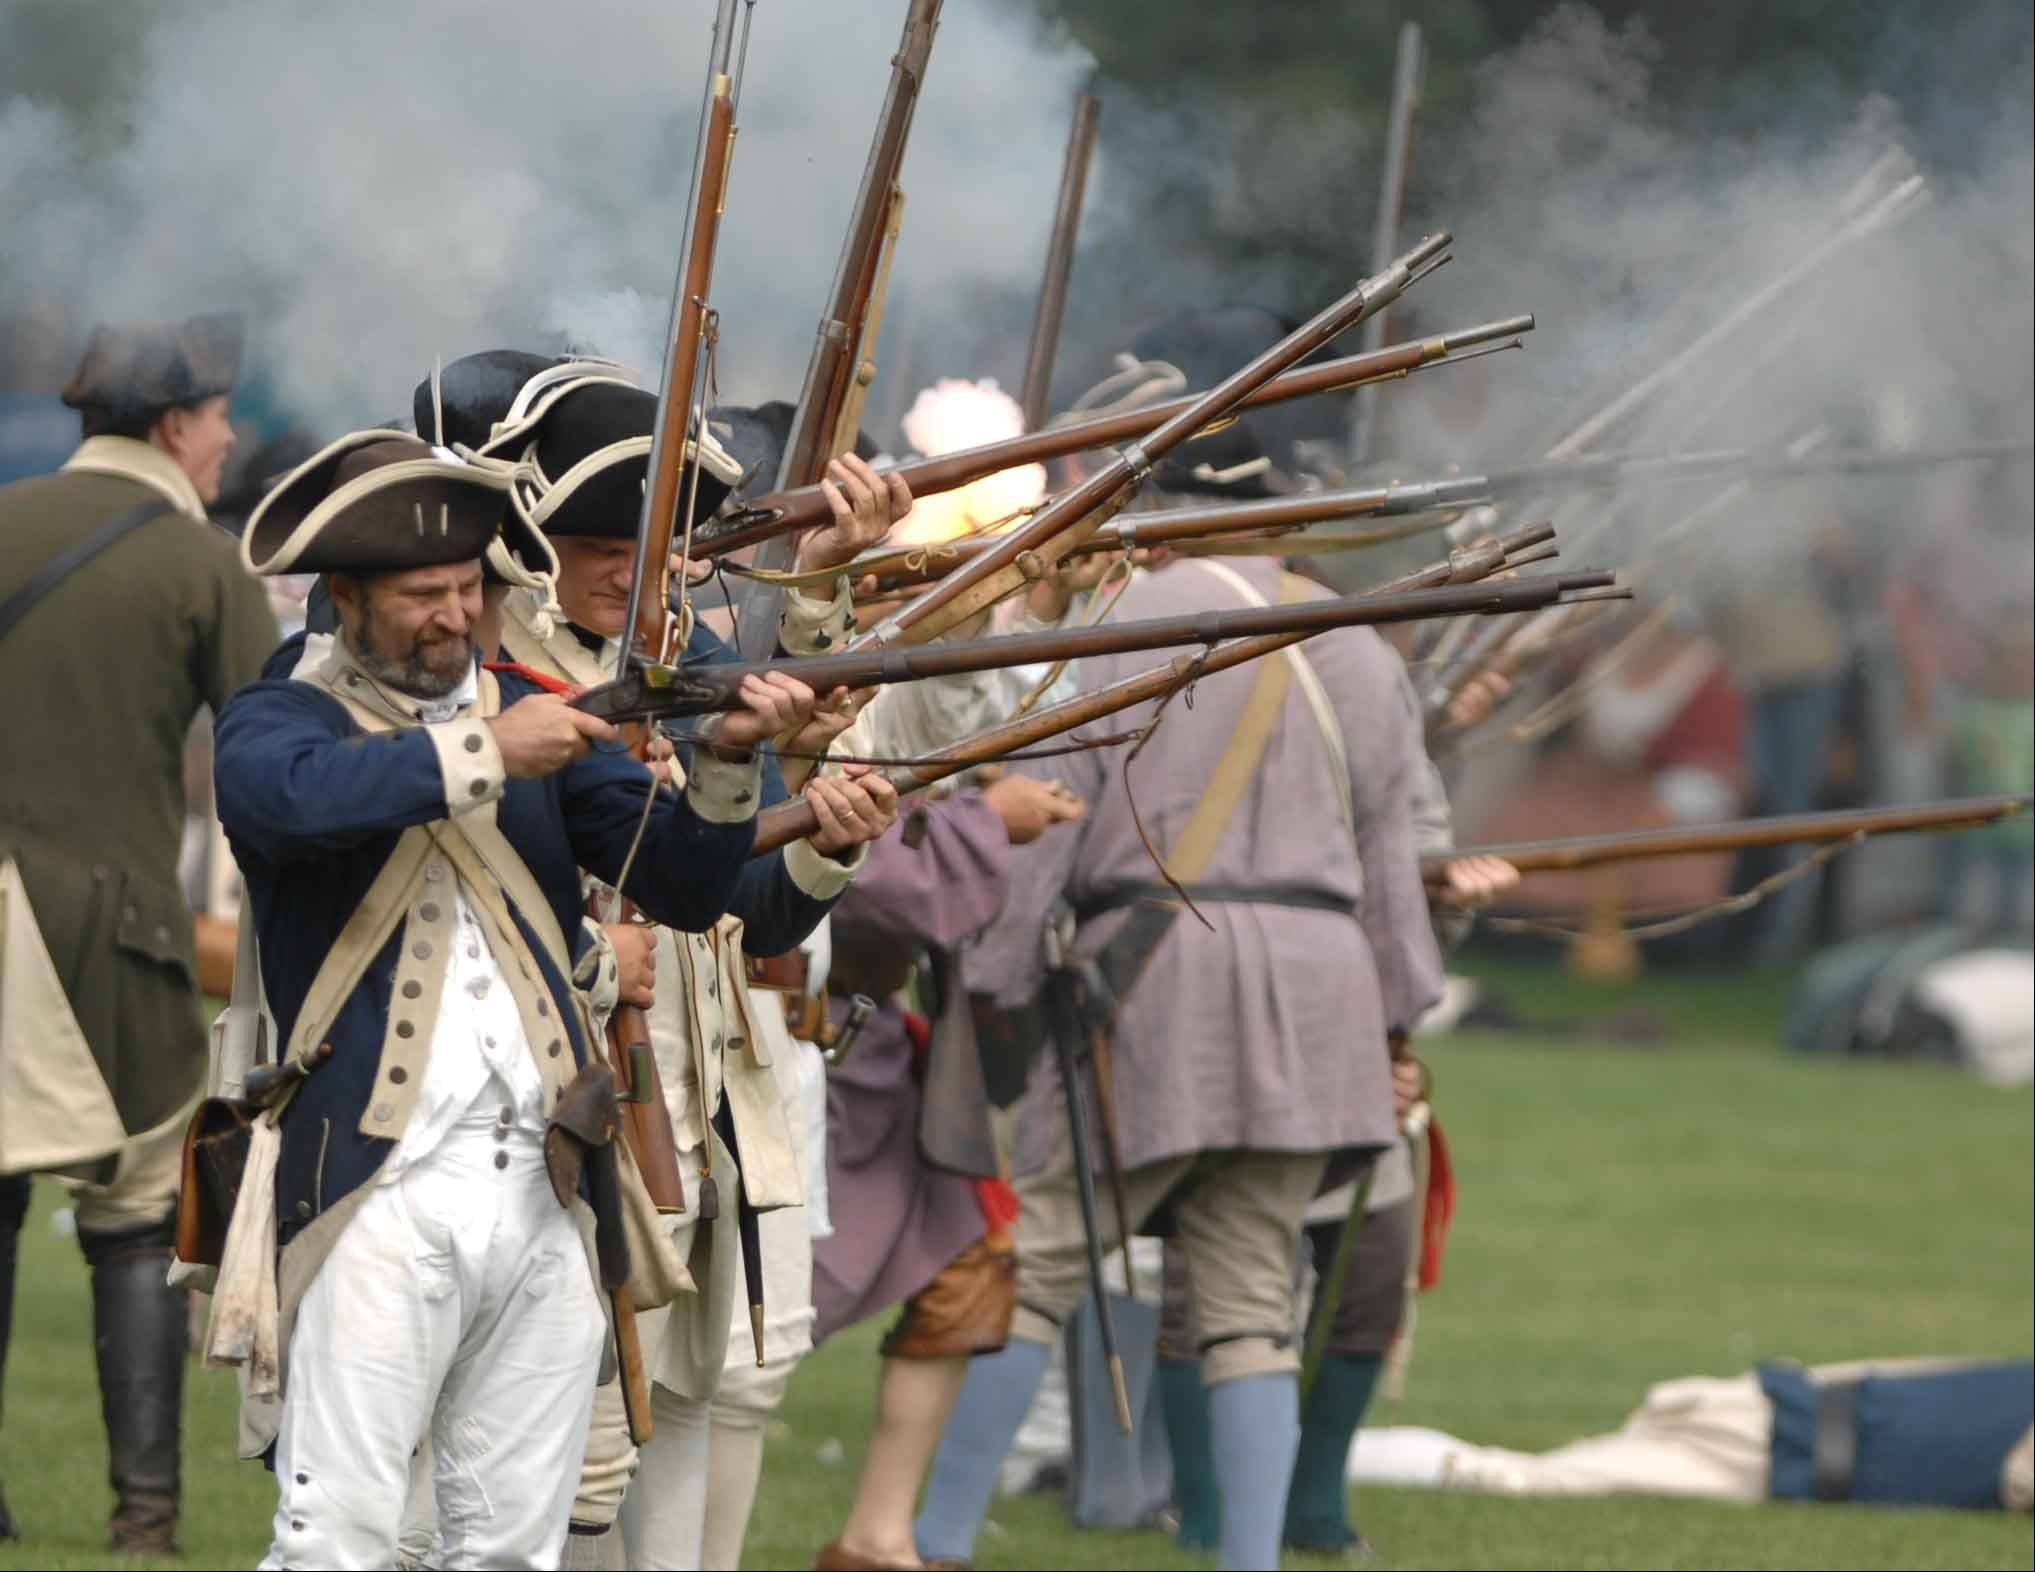 Re-enactors at Cantigny won't act out real battles from the Revolutionary War, but instead will demonstrate the strategies colonial and British armies used at the time.